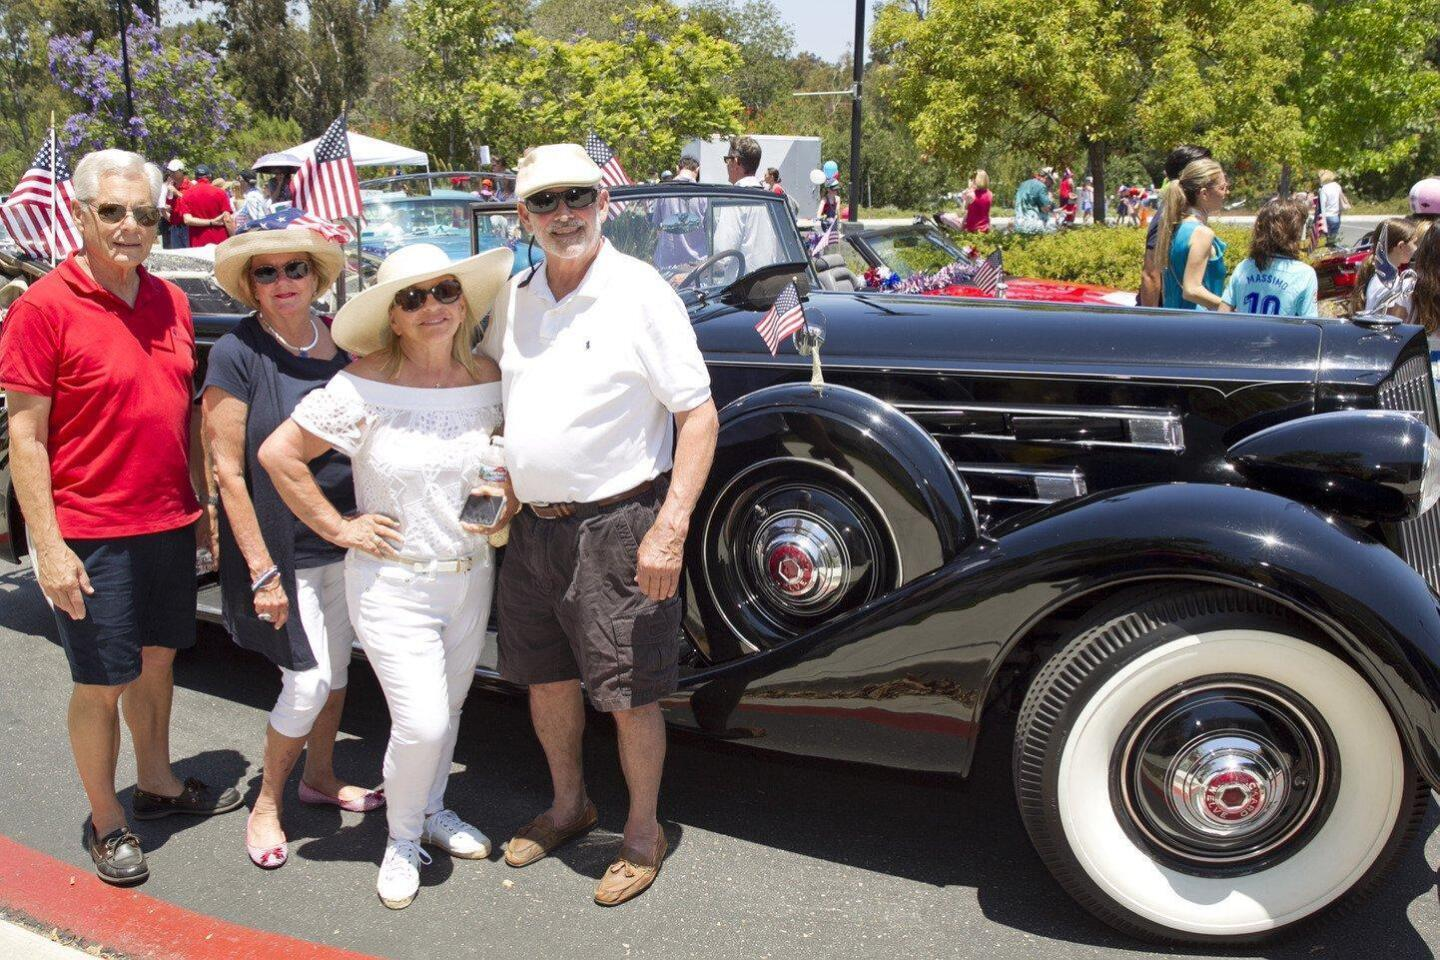 Bob and Mary Ellen Guy, Vicki and Carl Zeiger with a 1936 Packard Convertible Sedan